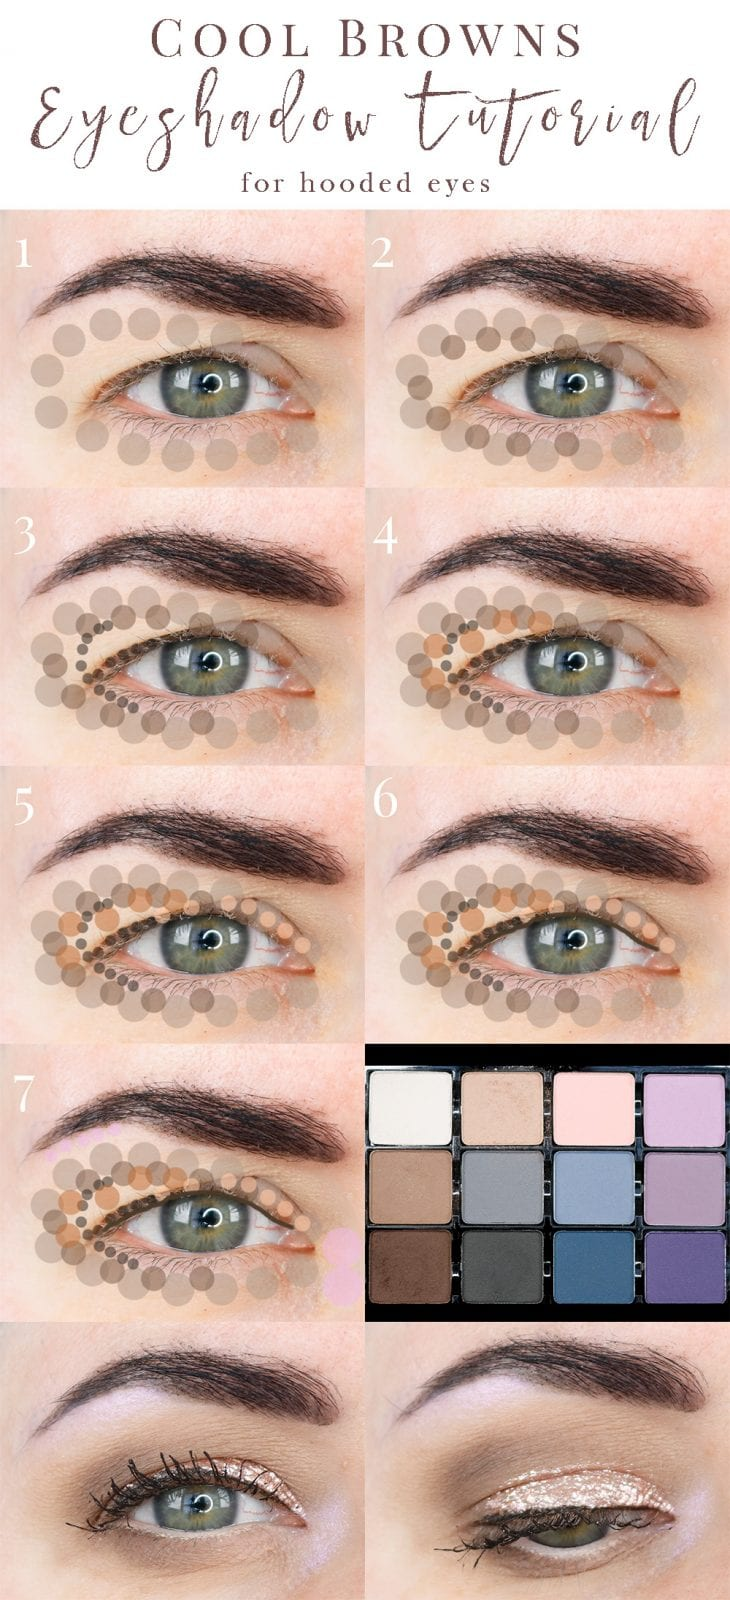 Cool Browns Eyeshadow Tutorial